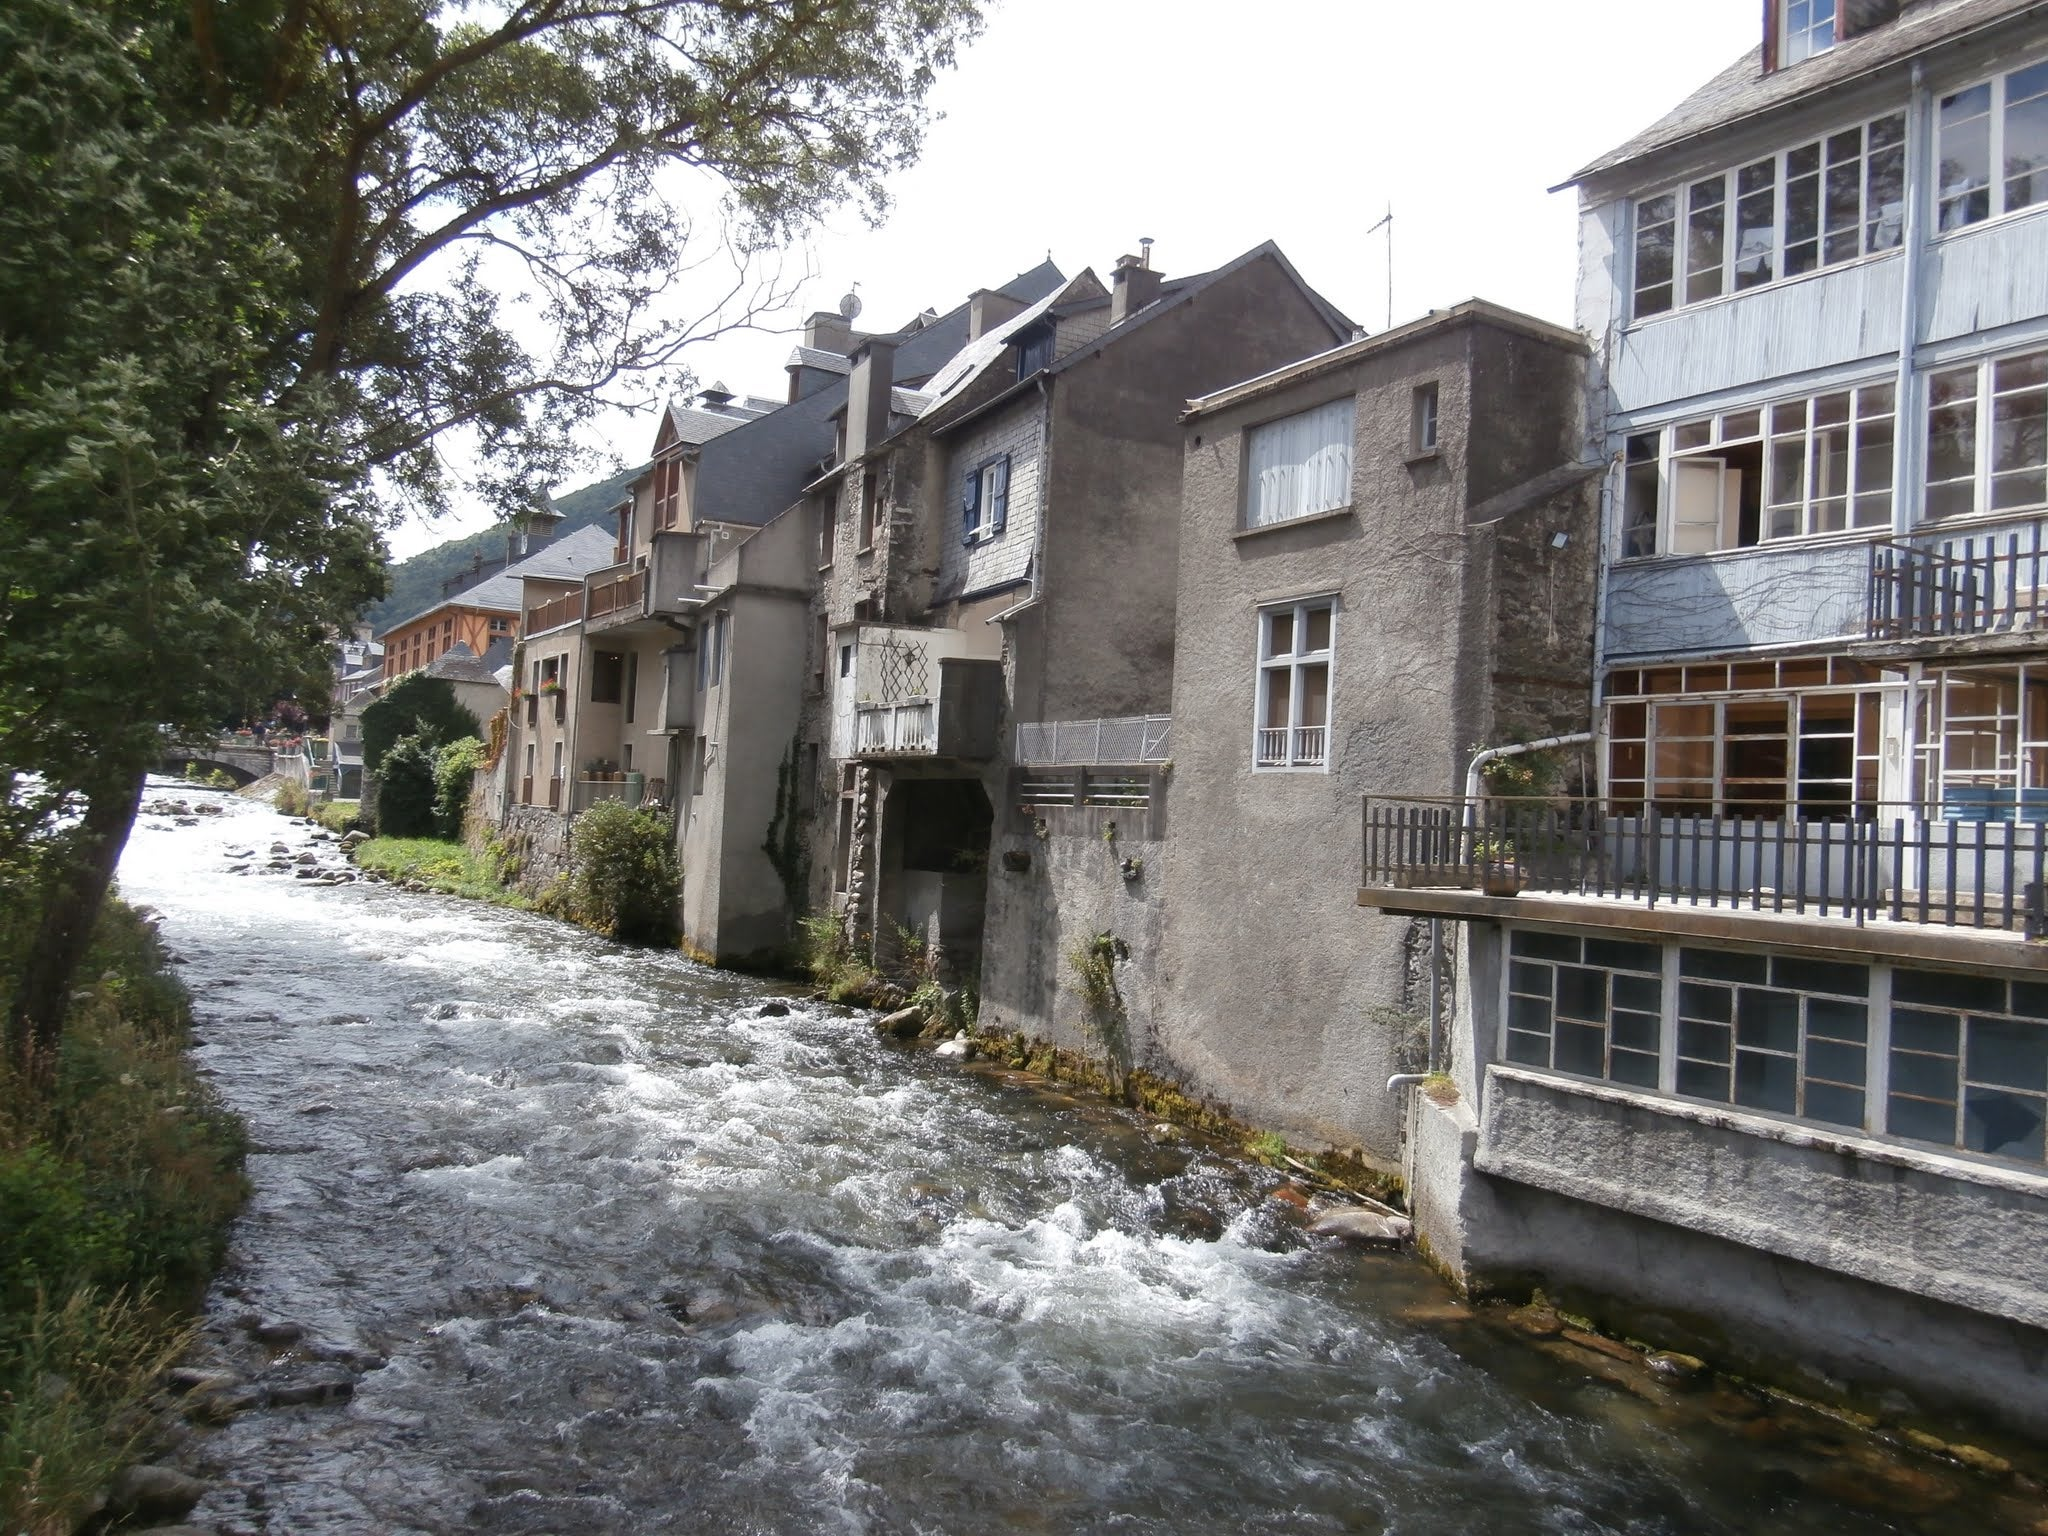 Waterway in Arreau